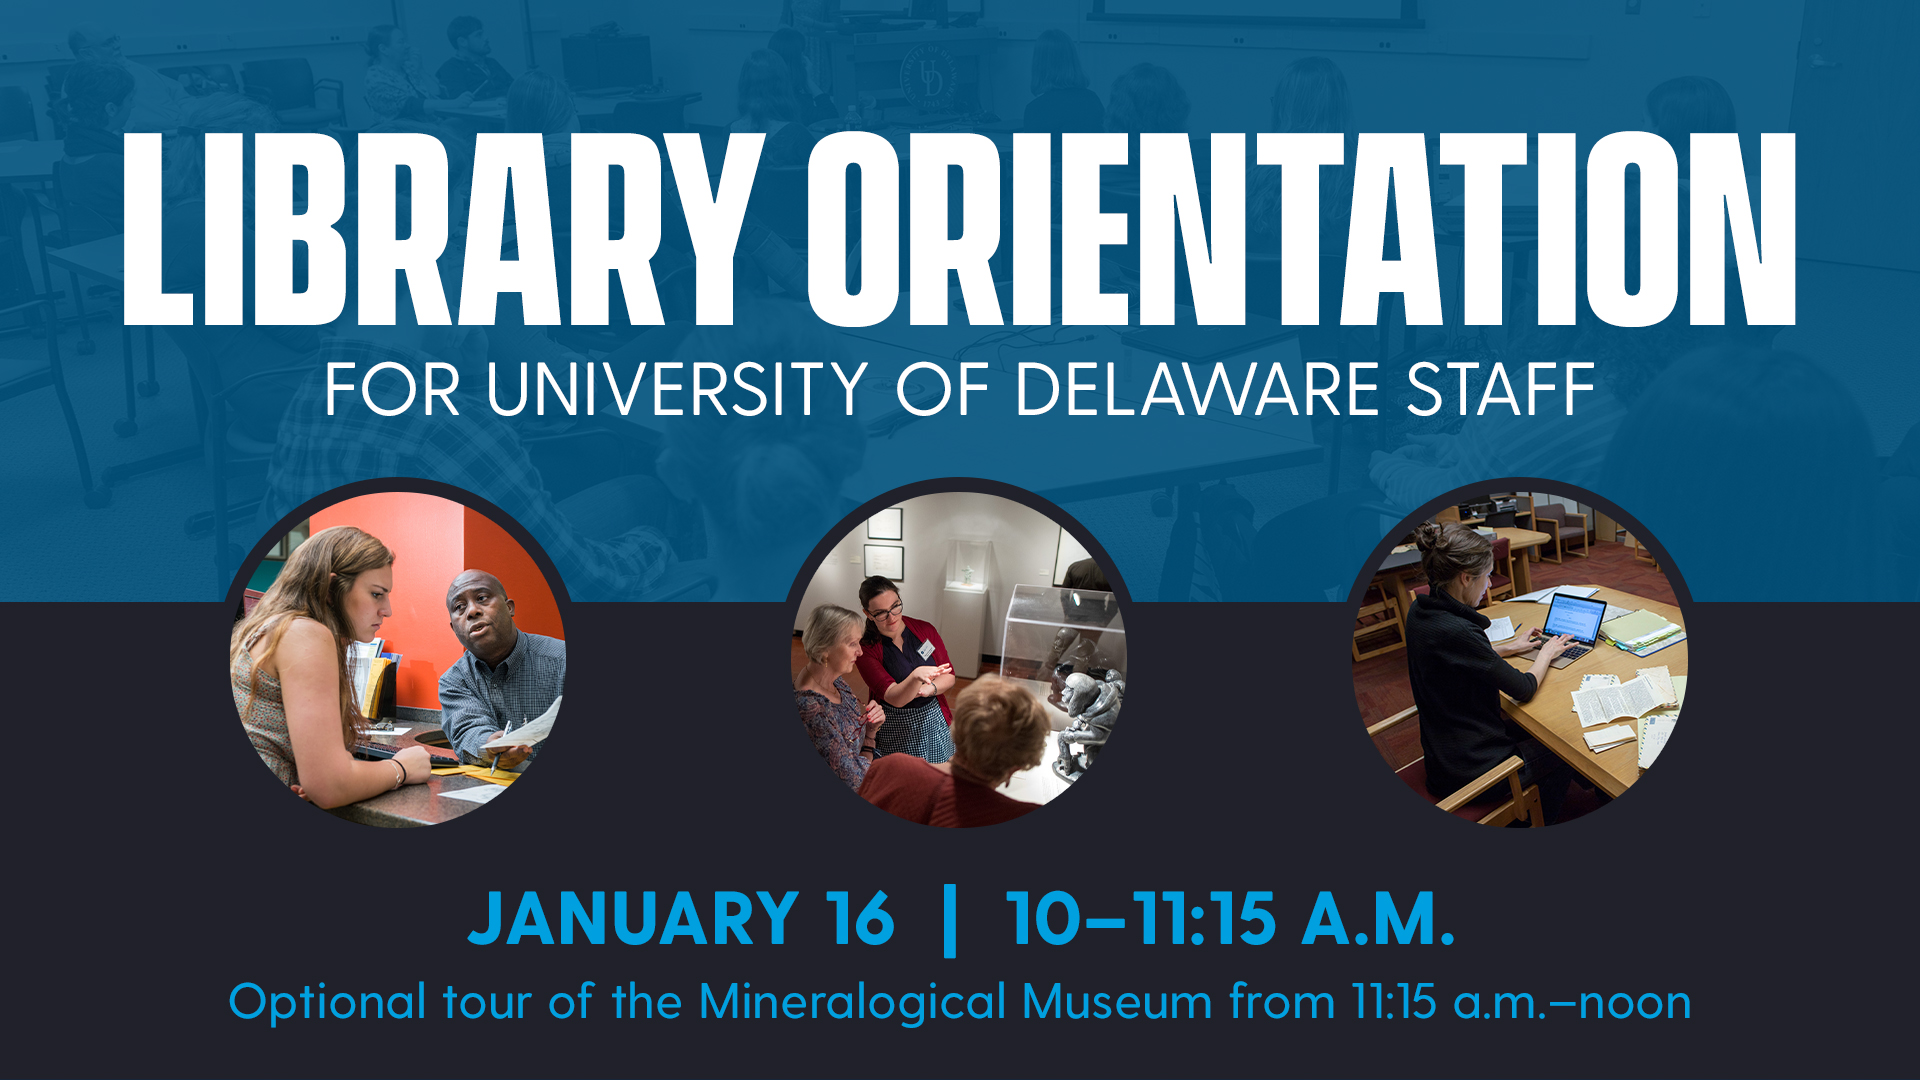 Promotional image for the Library Orientation for UD Staff workshop